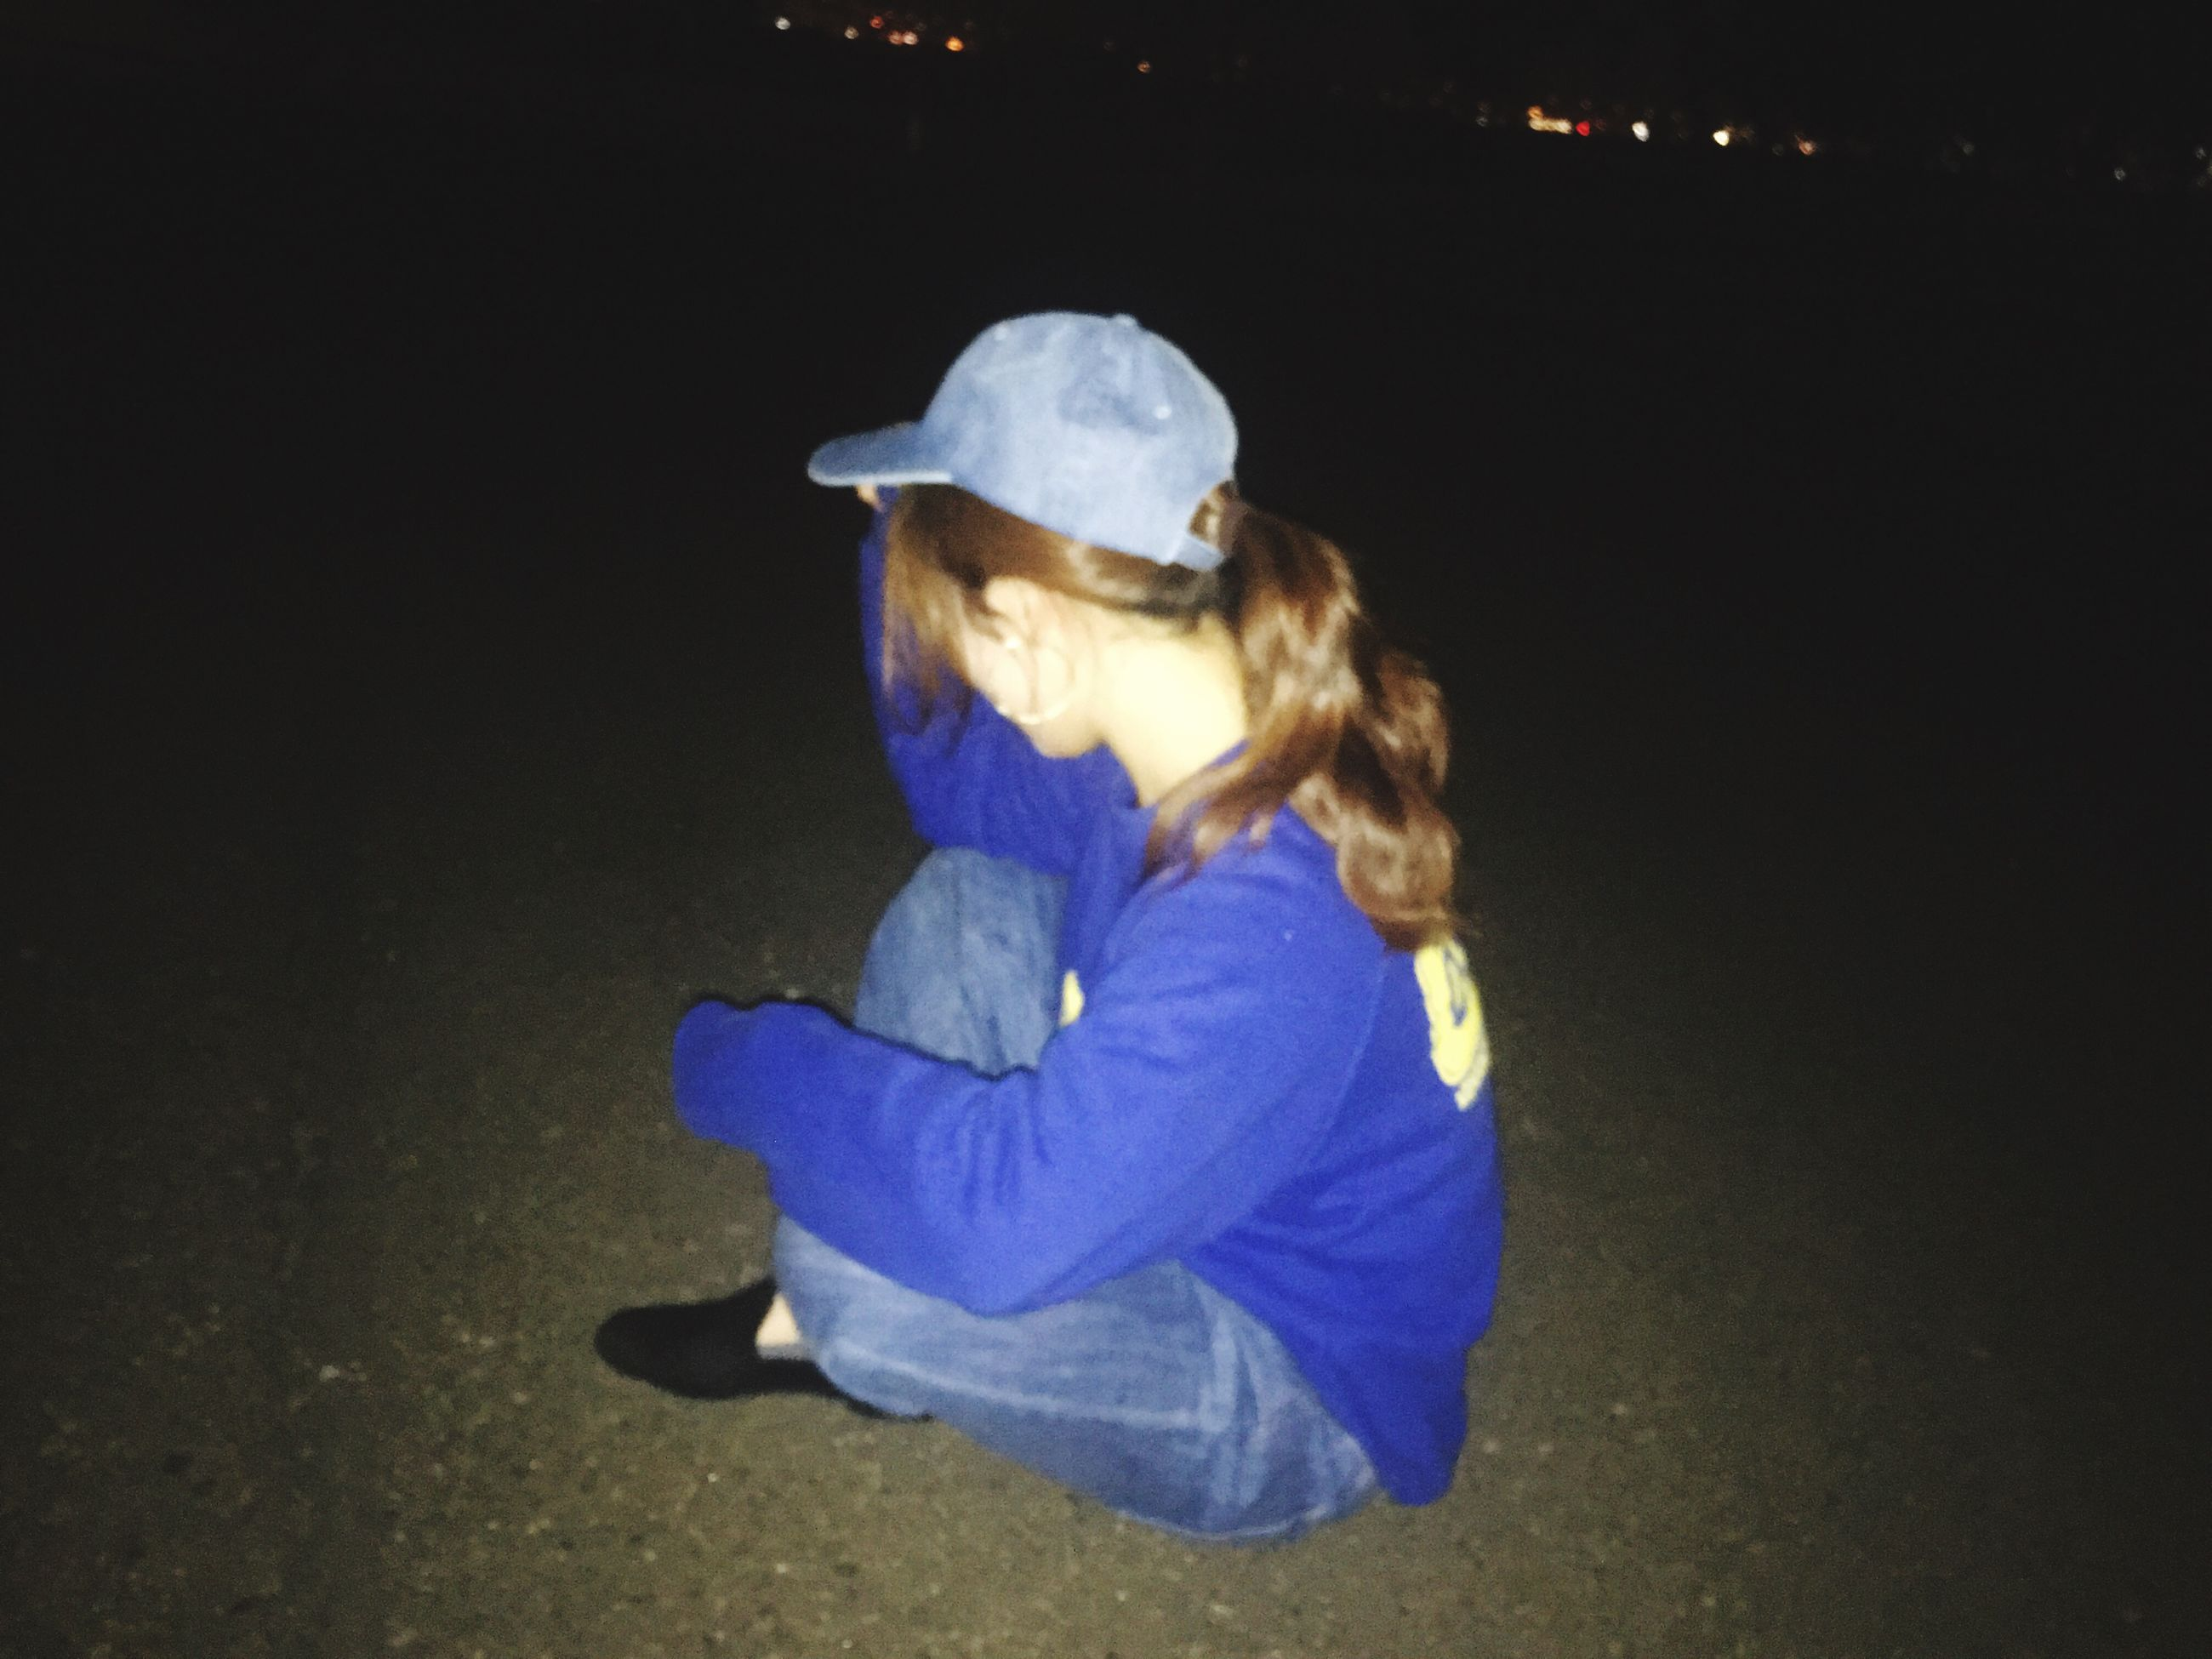 childhood, real people, girls, child, full length, one person, children only, outdoors, night